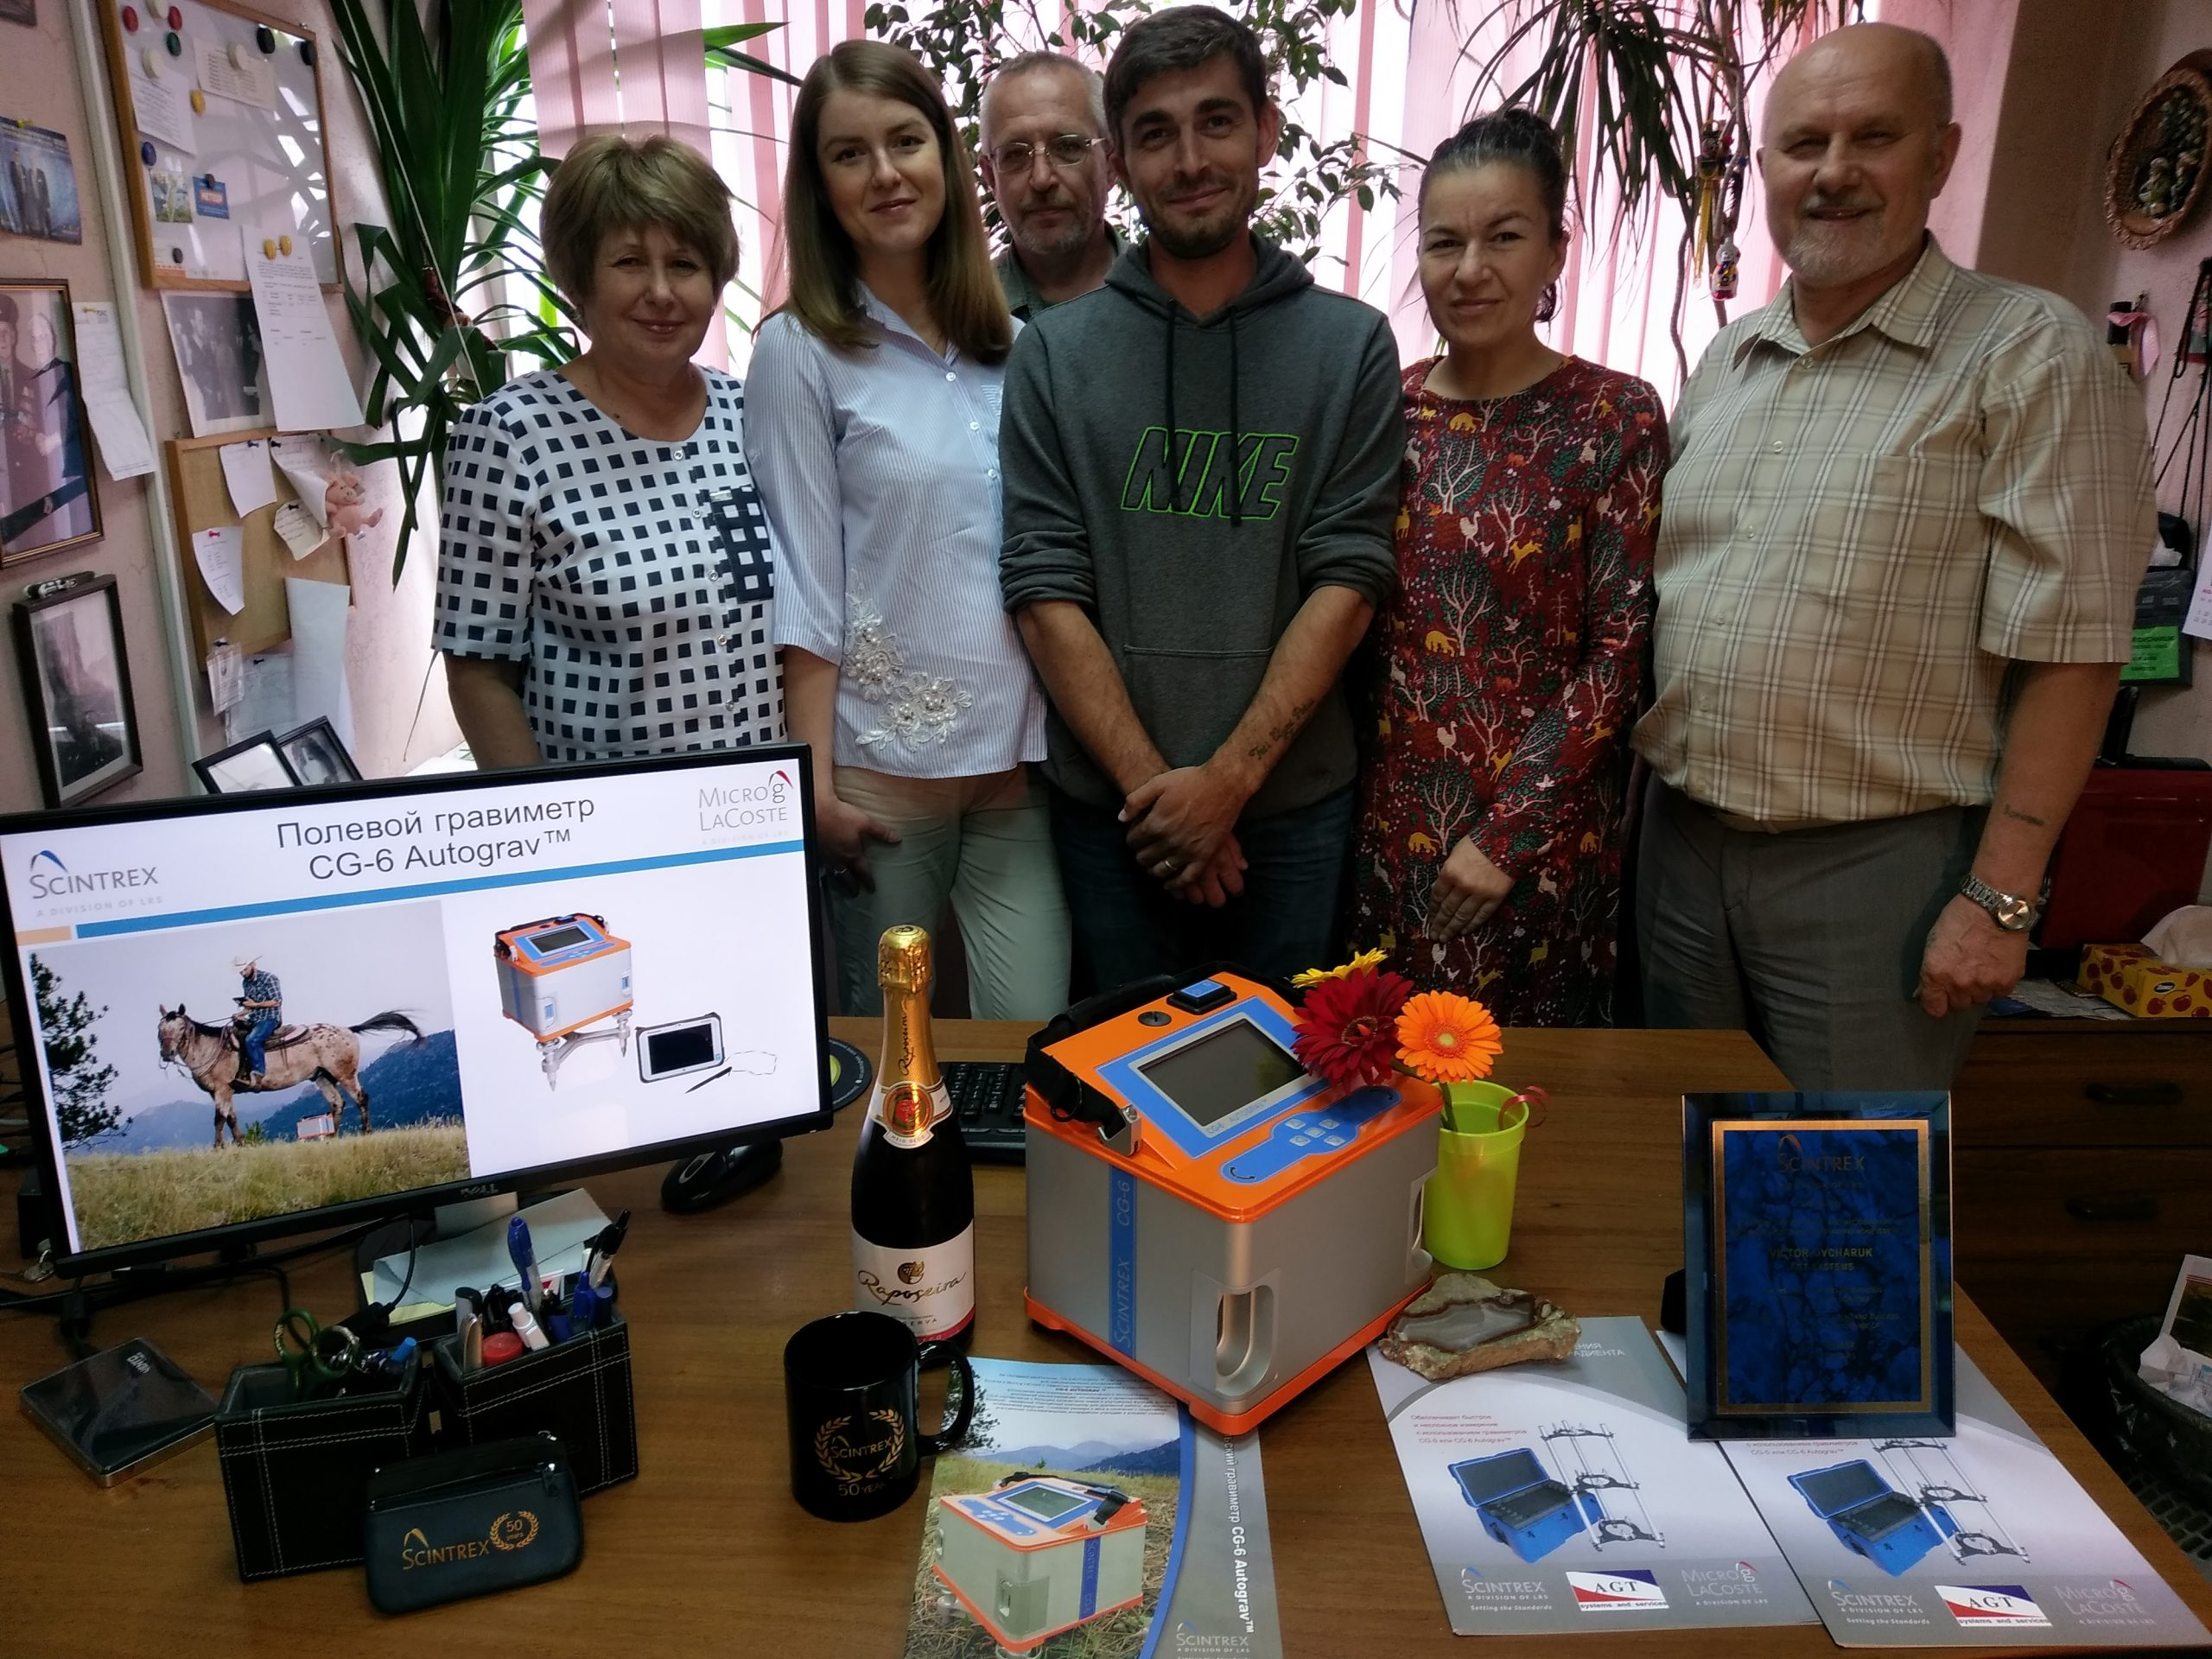 Celebration for the personal of AGT because of new geophysical instrument